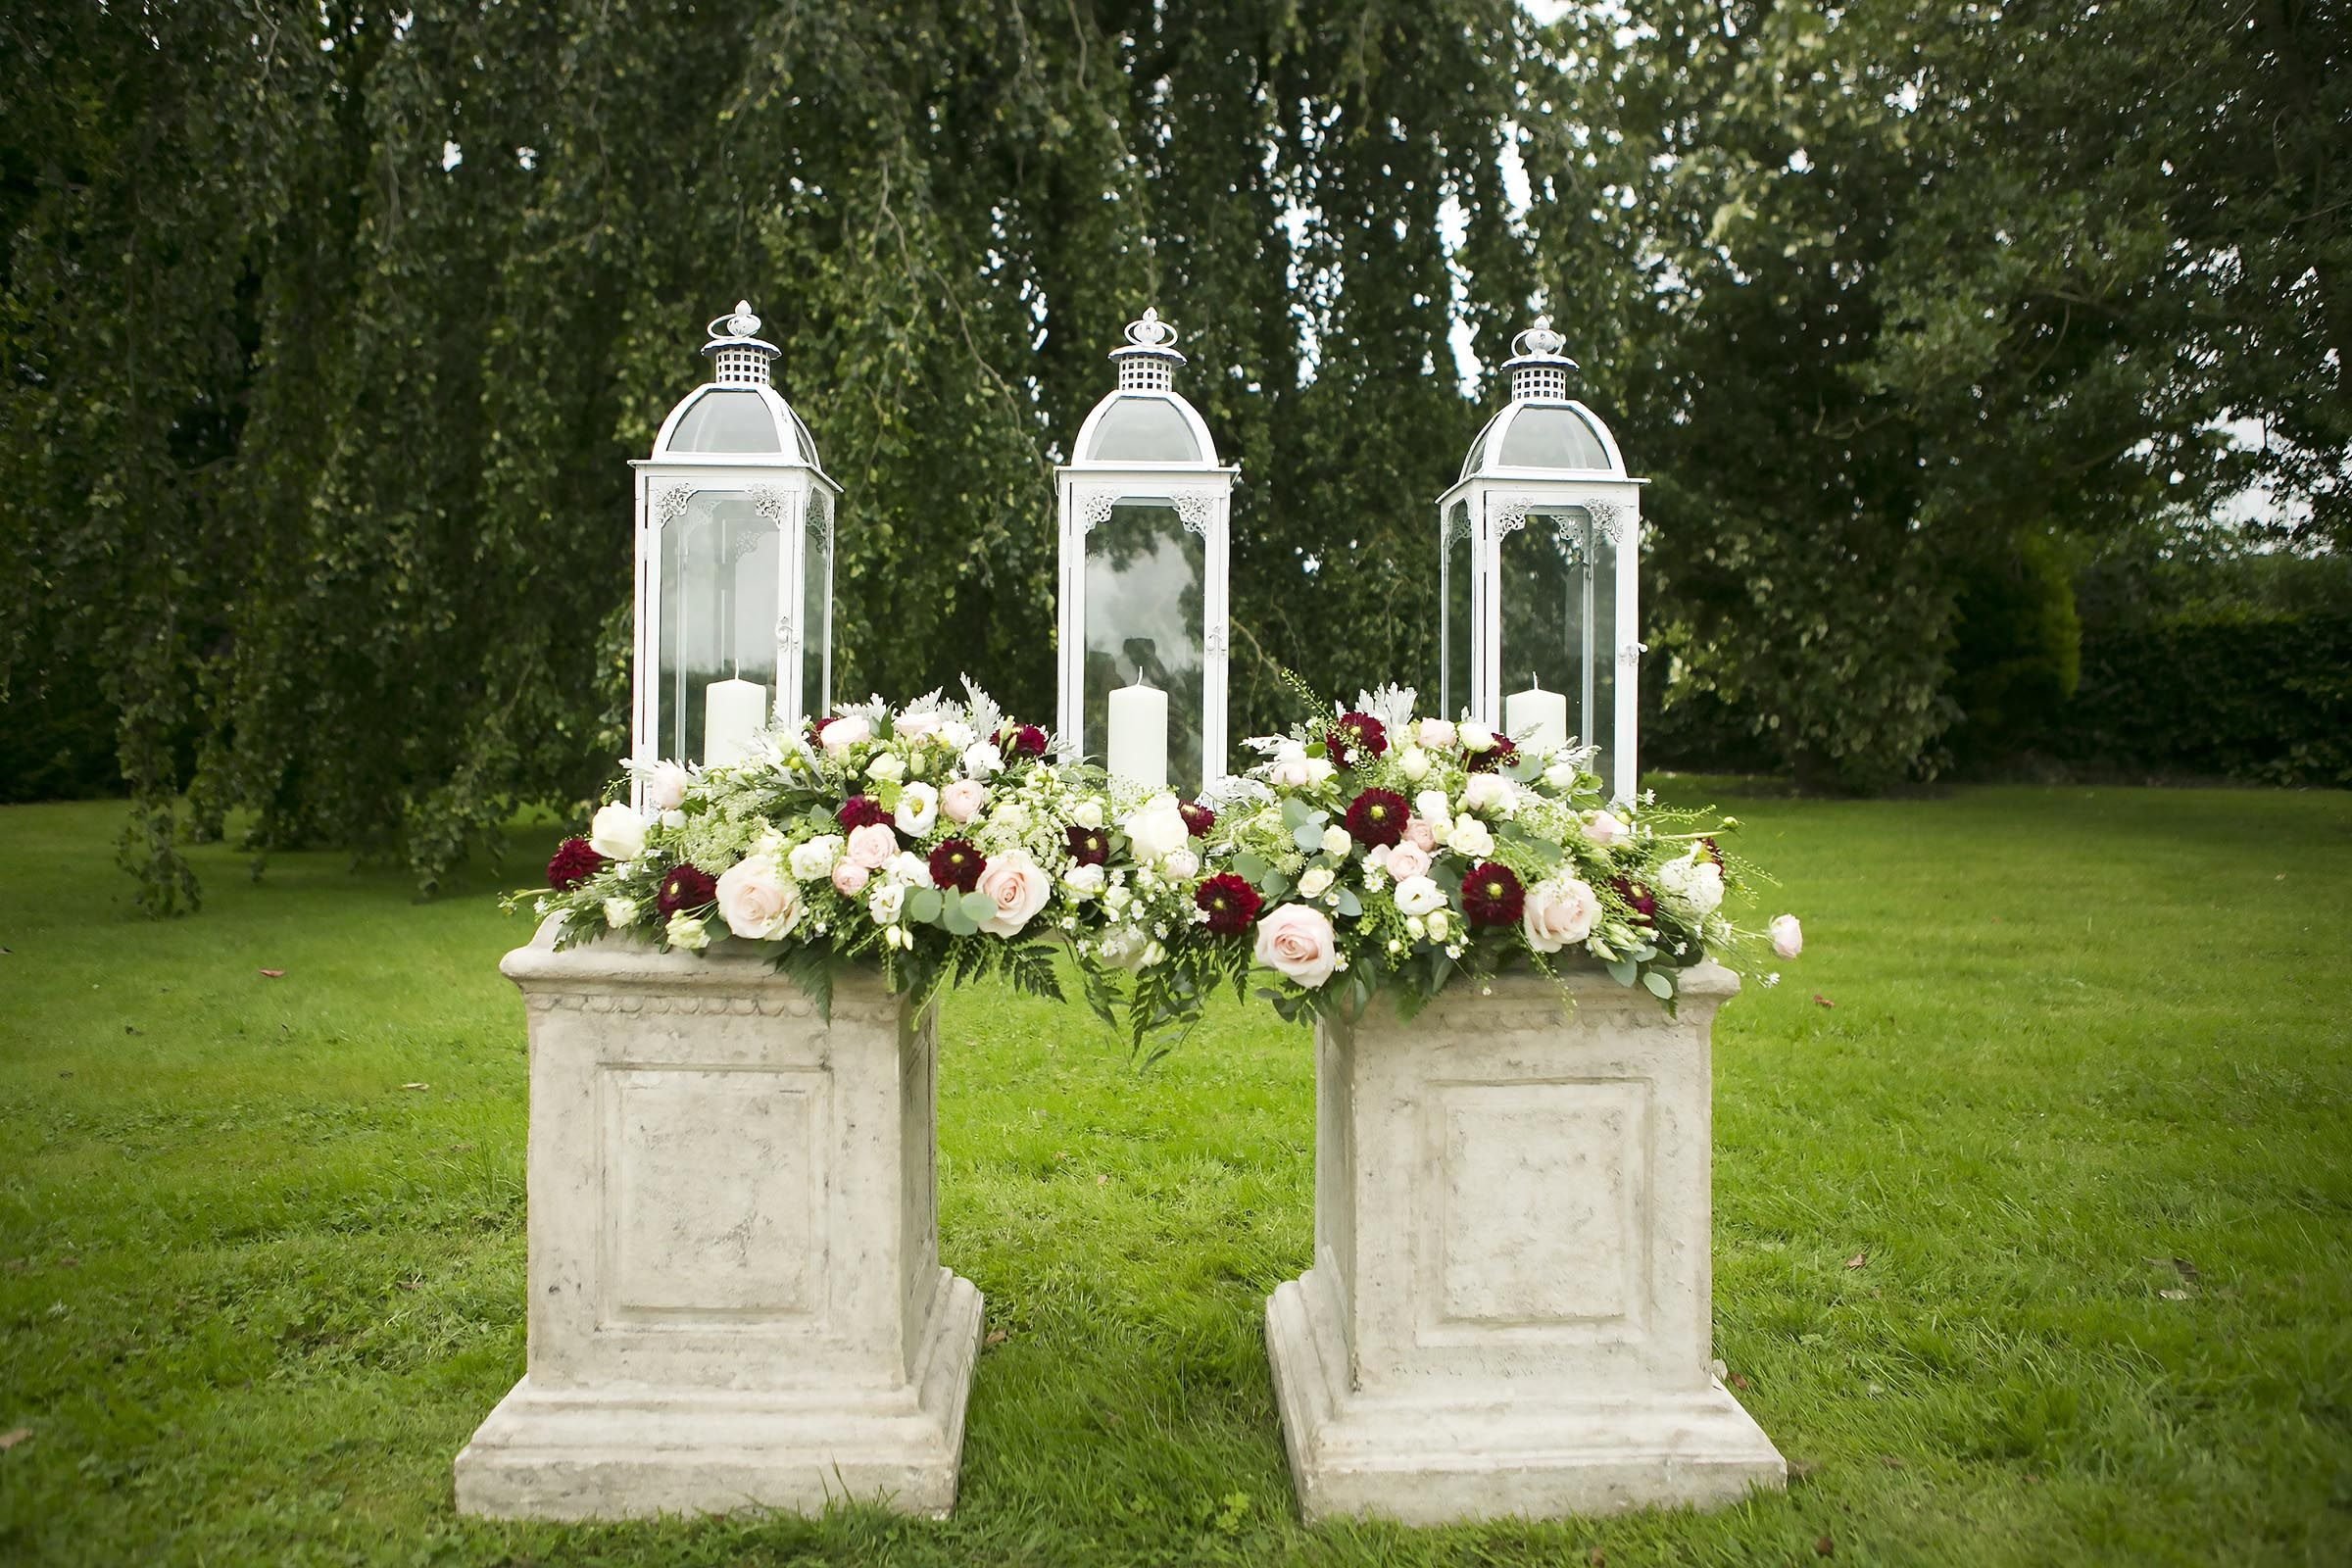 Even if you choose to have a outdoor wedding ceremony, you